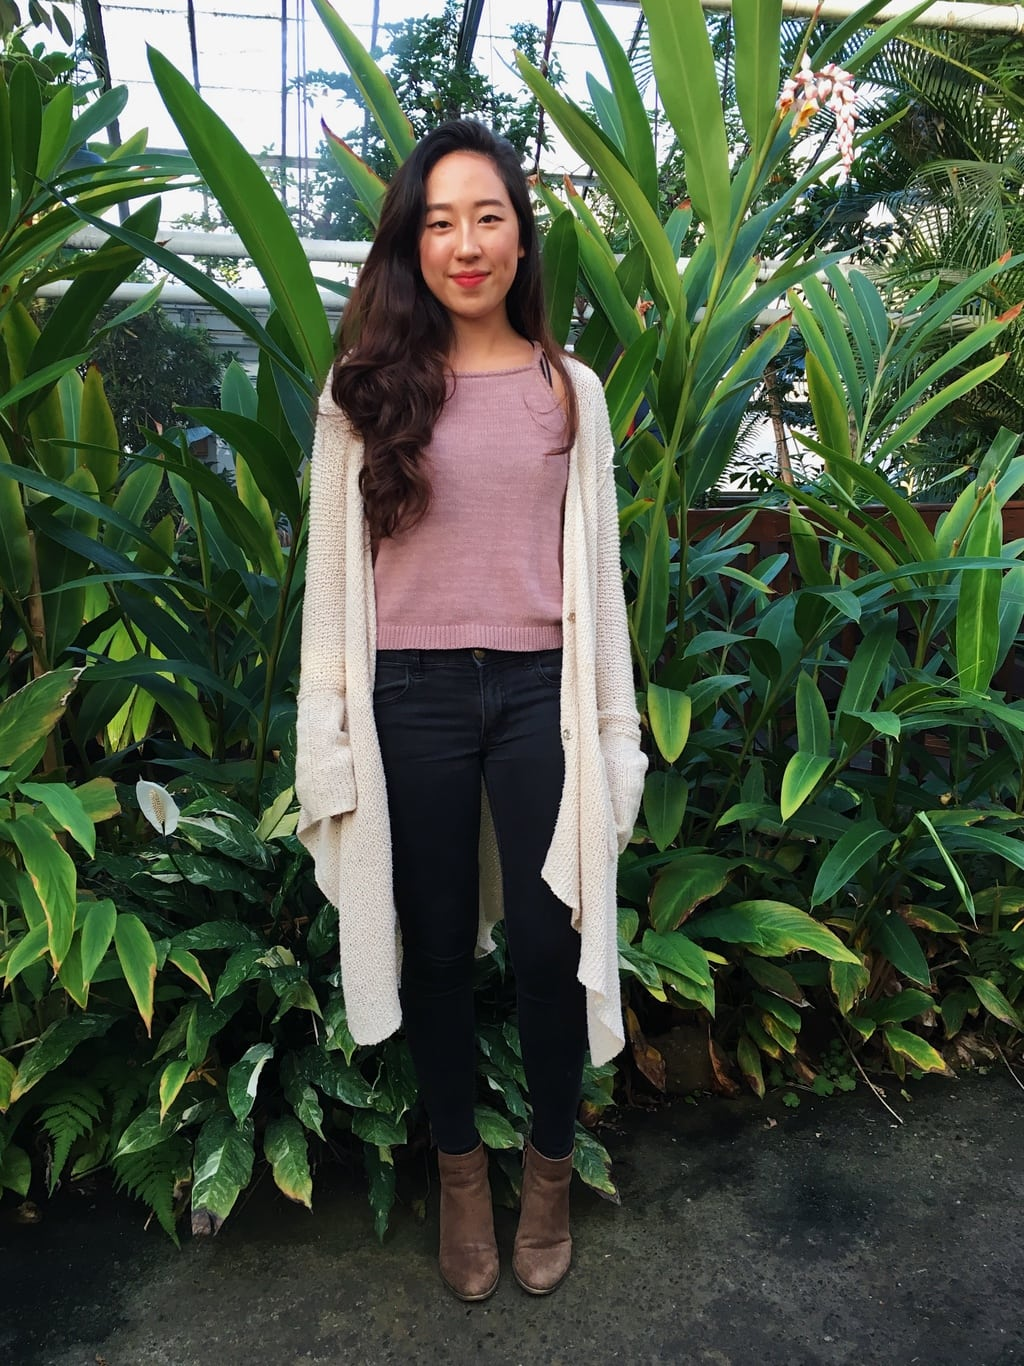 University of Massachusetts Amherst student Aren sports a mauve knit sleeveless top, a long flowy oatmeal knit sweater, dark wash skinny jeans, and chunky brown booties in the campus greenhouse.